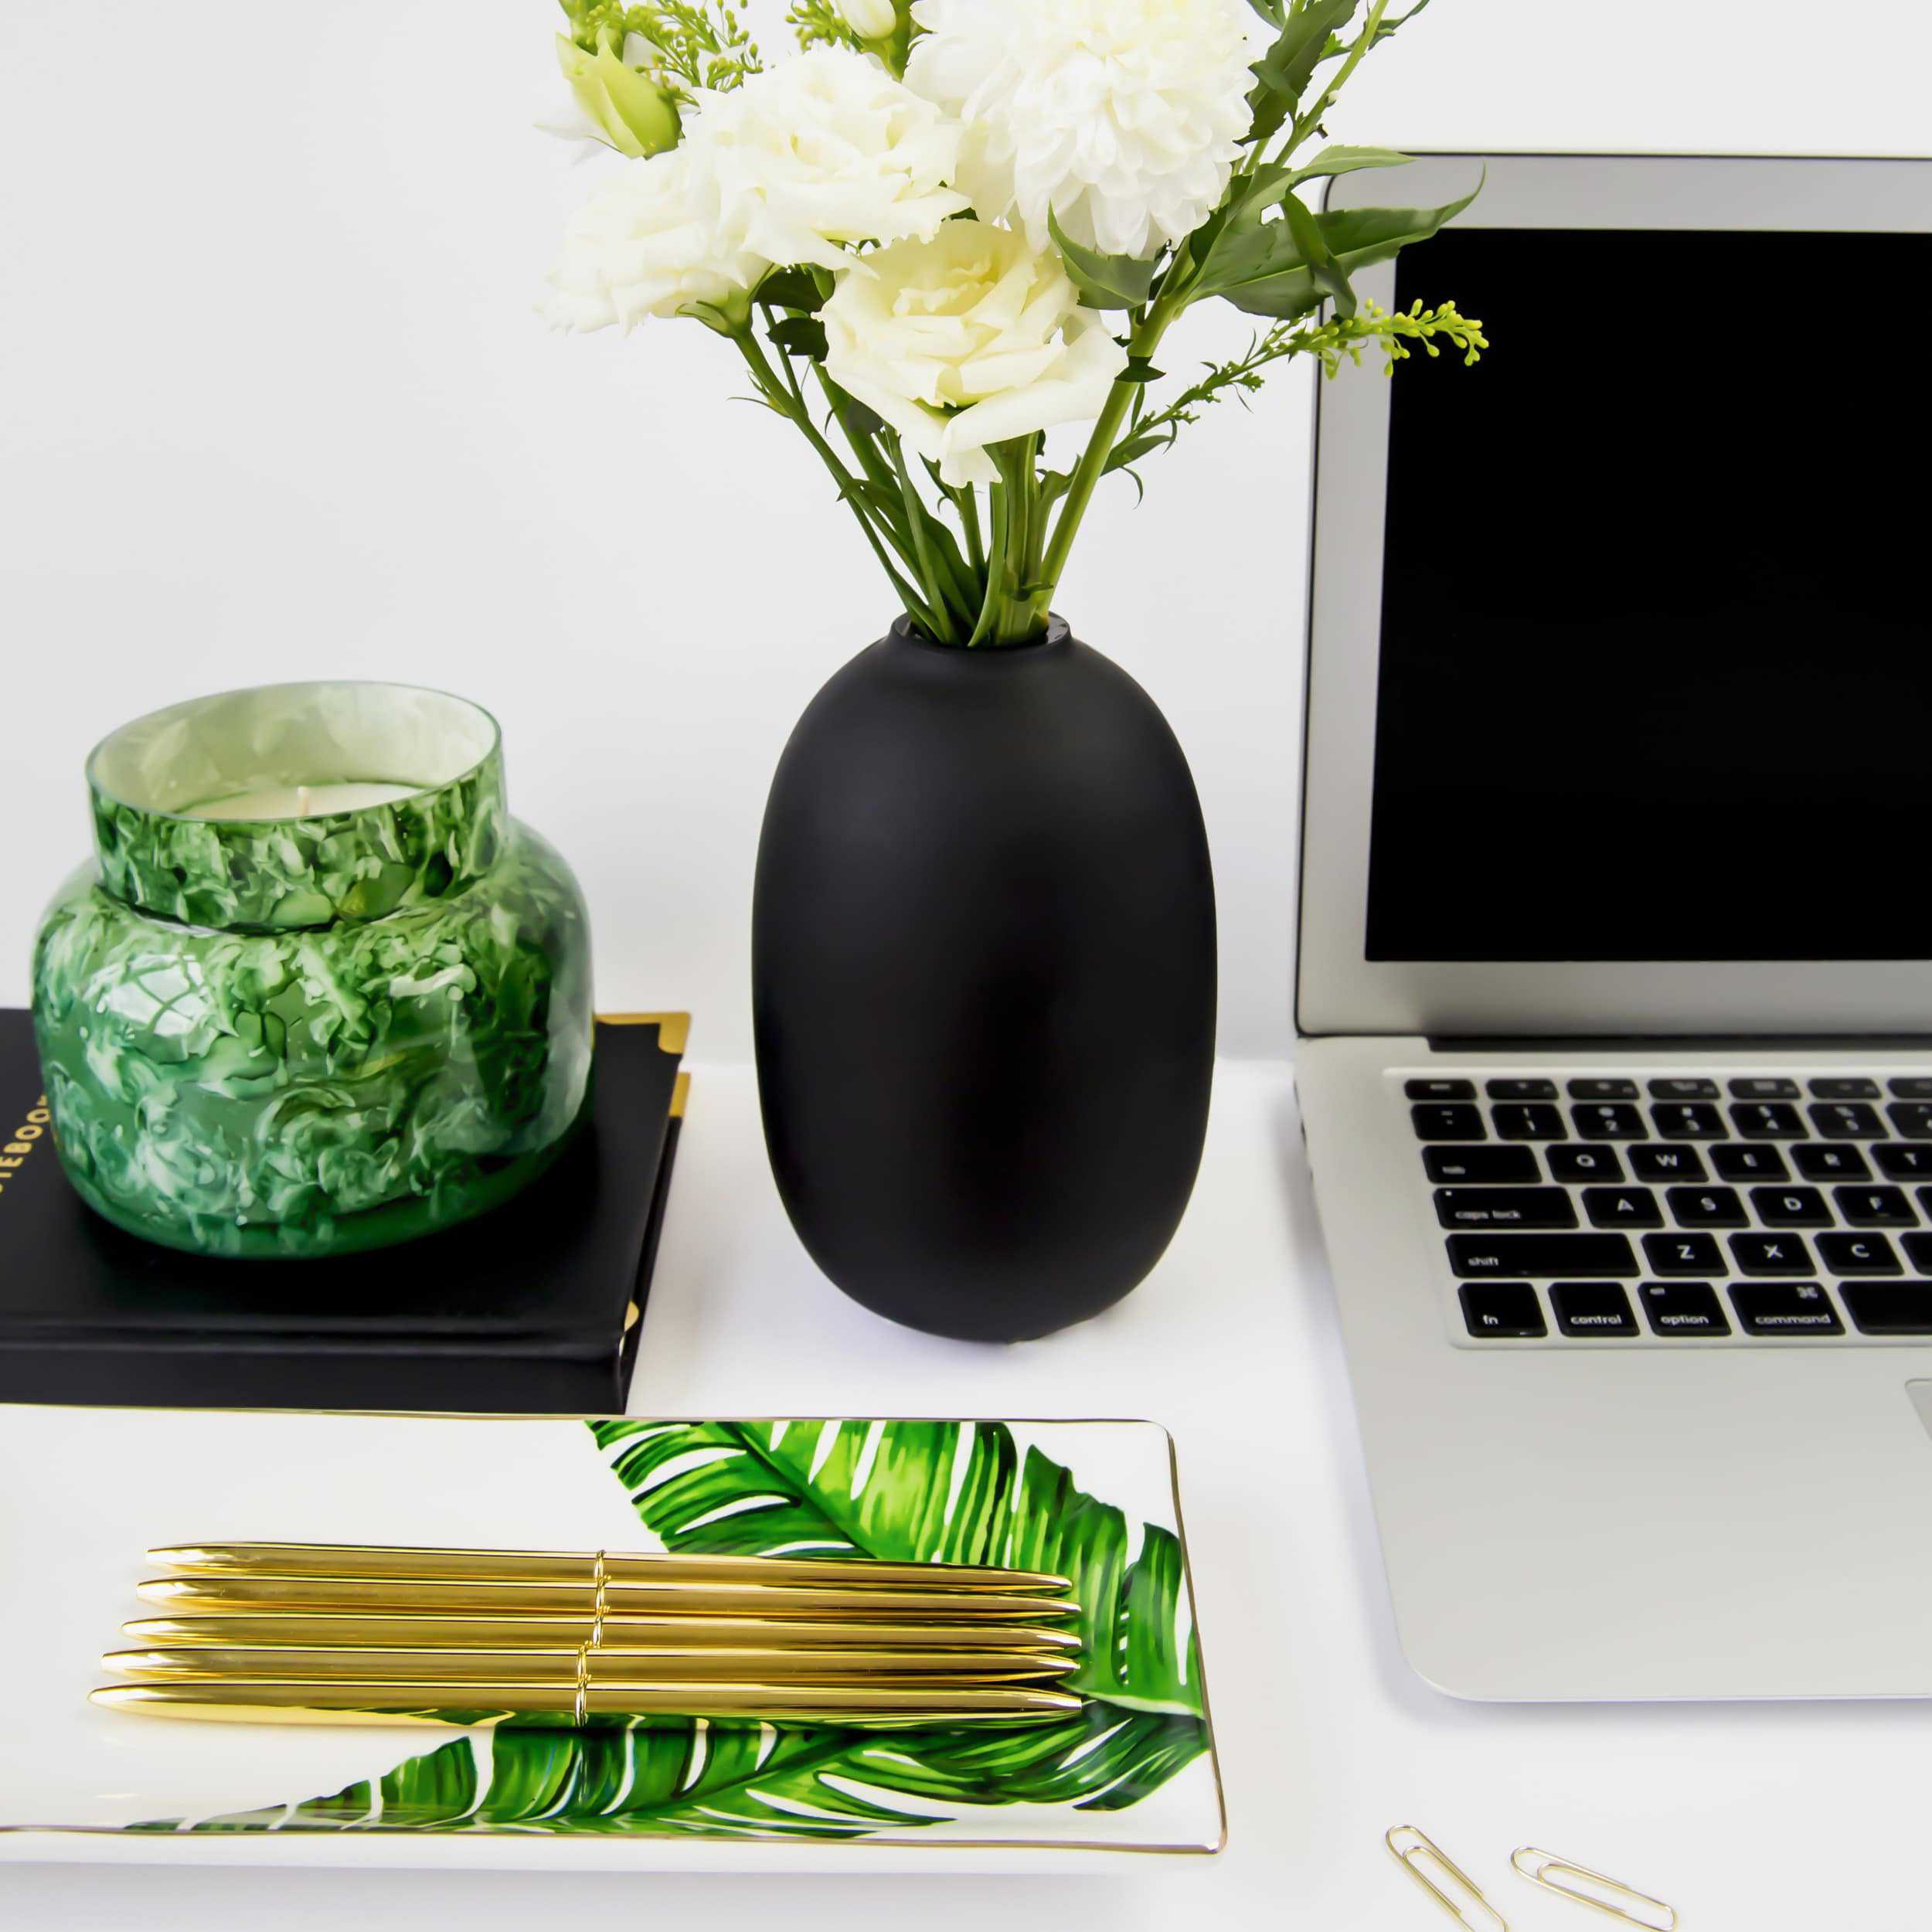 3 Tips for Maintaining Work-Life Balance While Working from Home